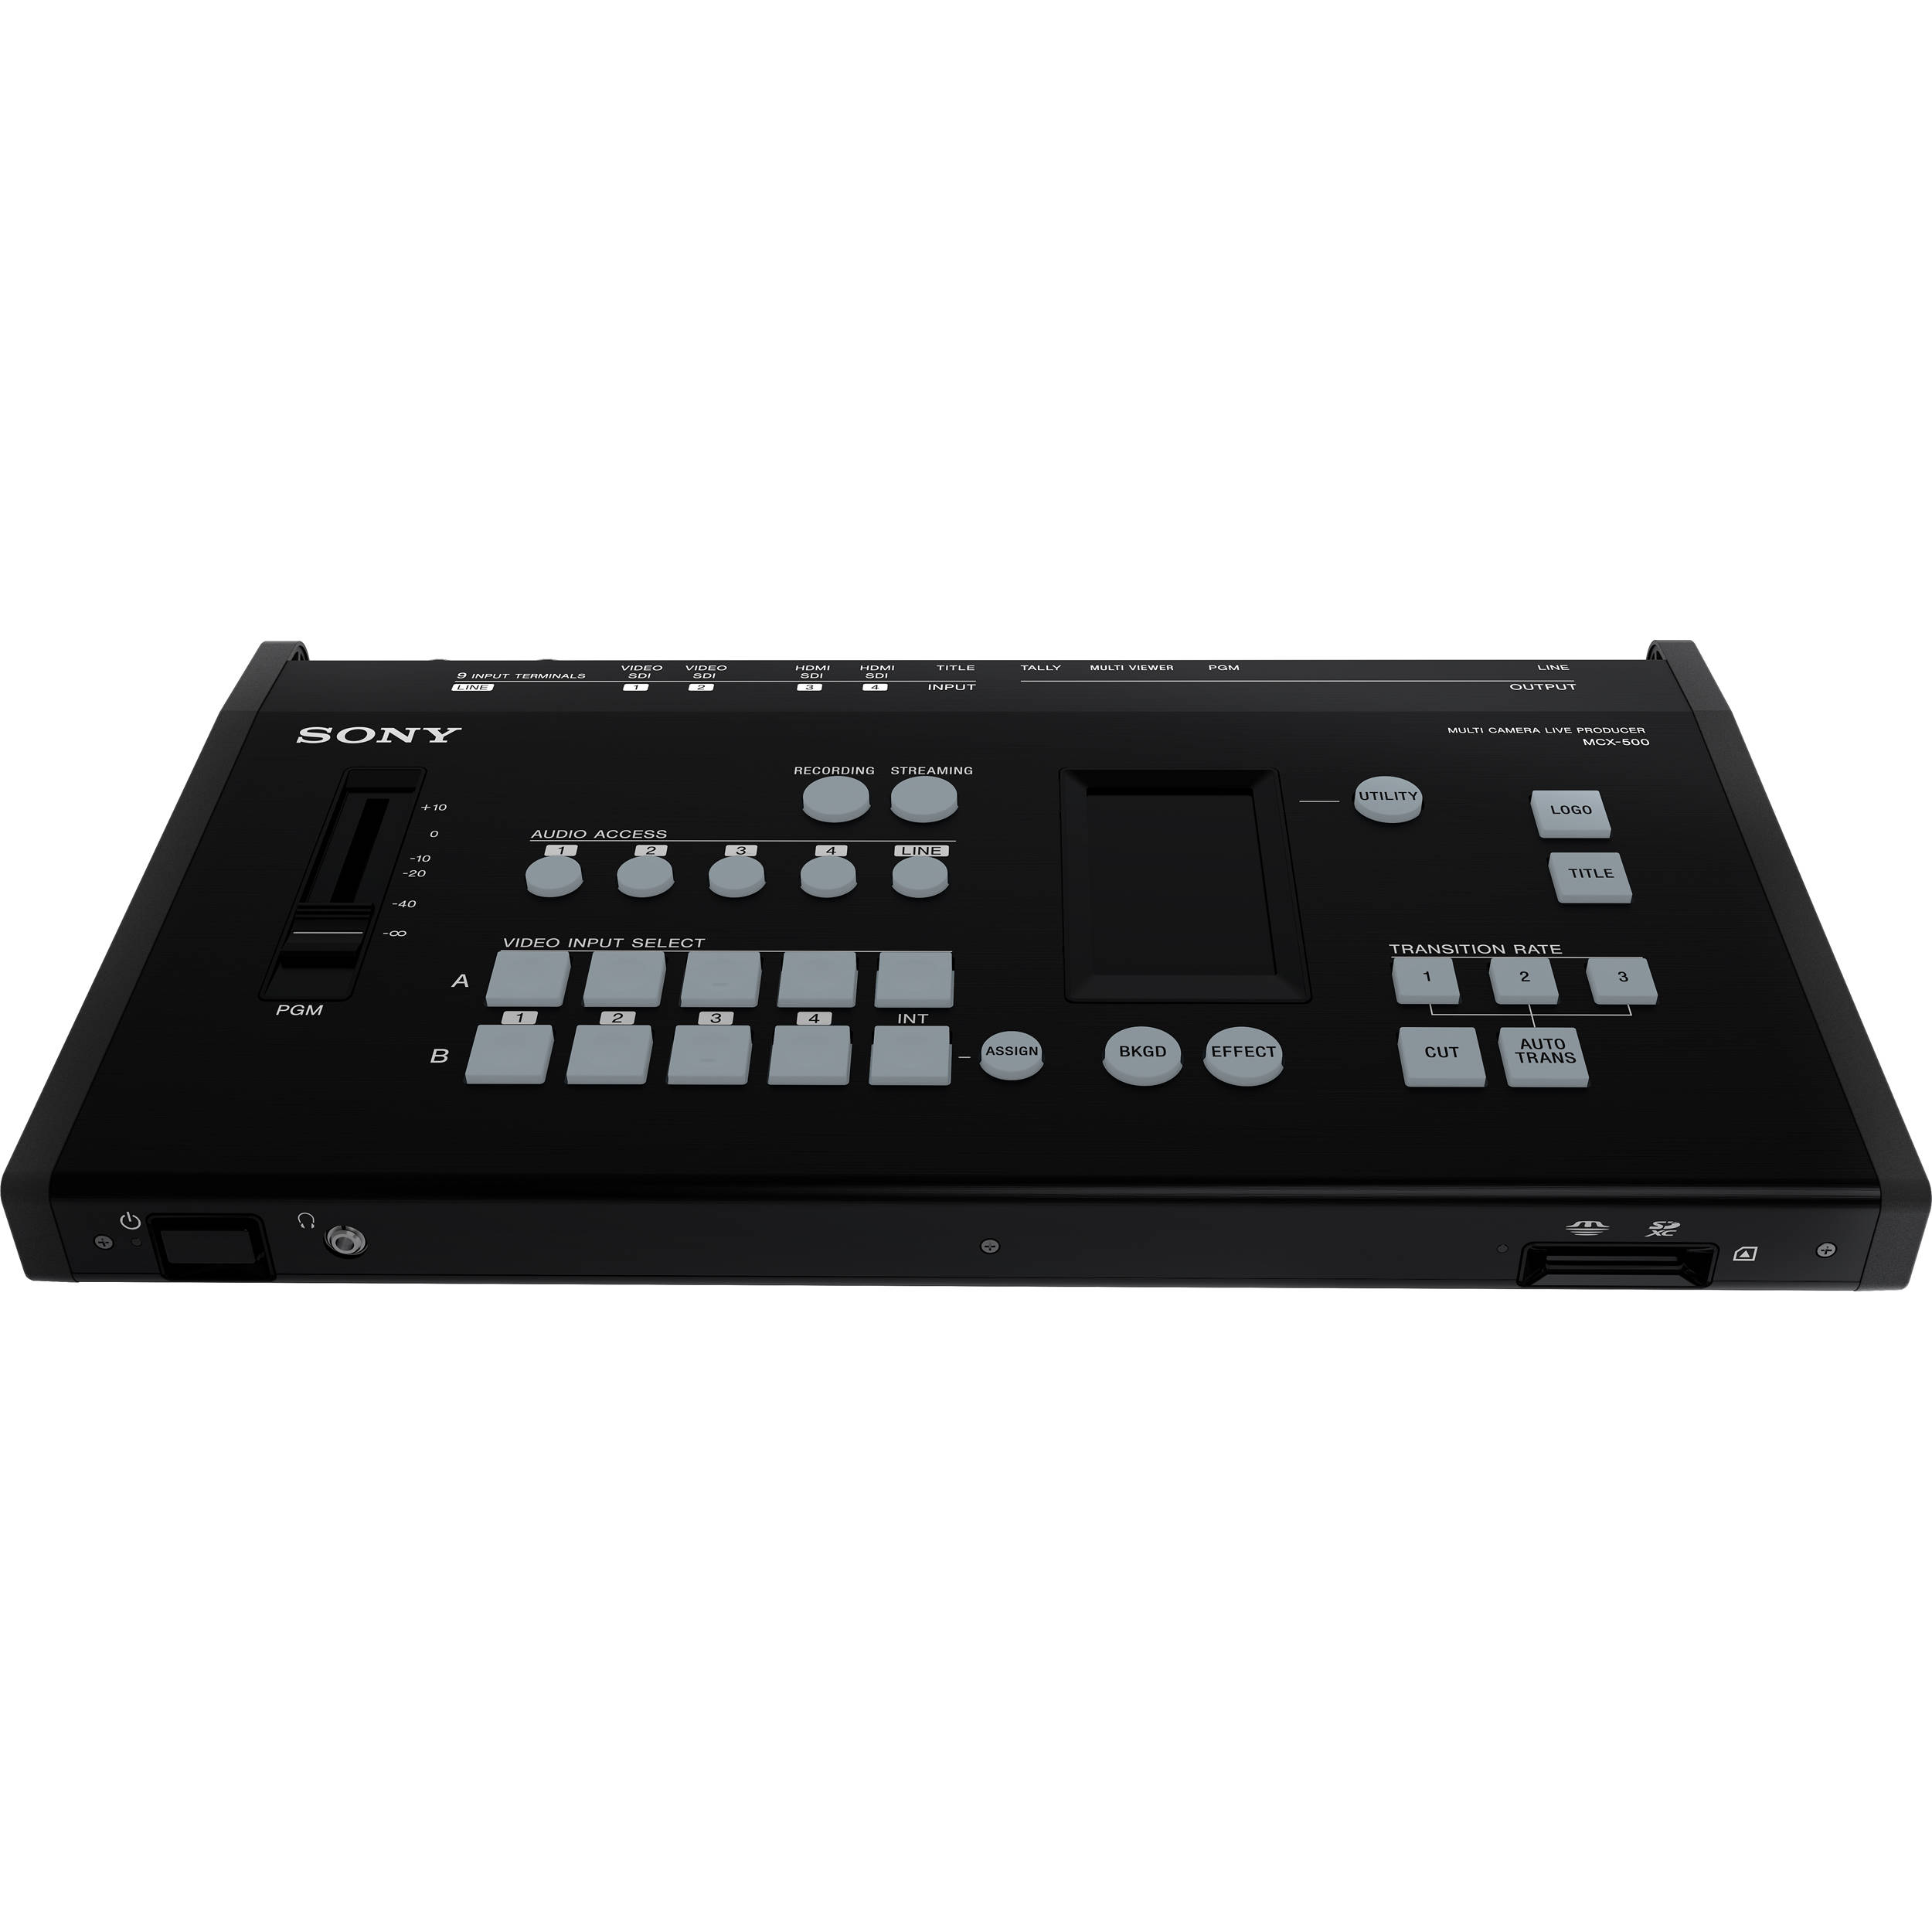 Sony Mcx 500 4 Input Global Production Bh Photo Video Addacircuitfuseadapteriphoneipodinstallmiatajpg Streaming Recording Switcher